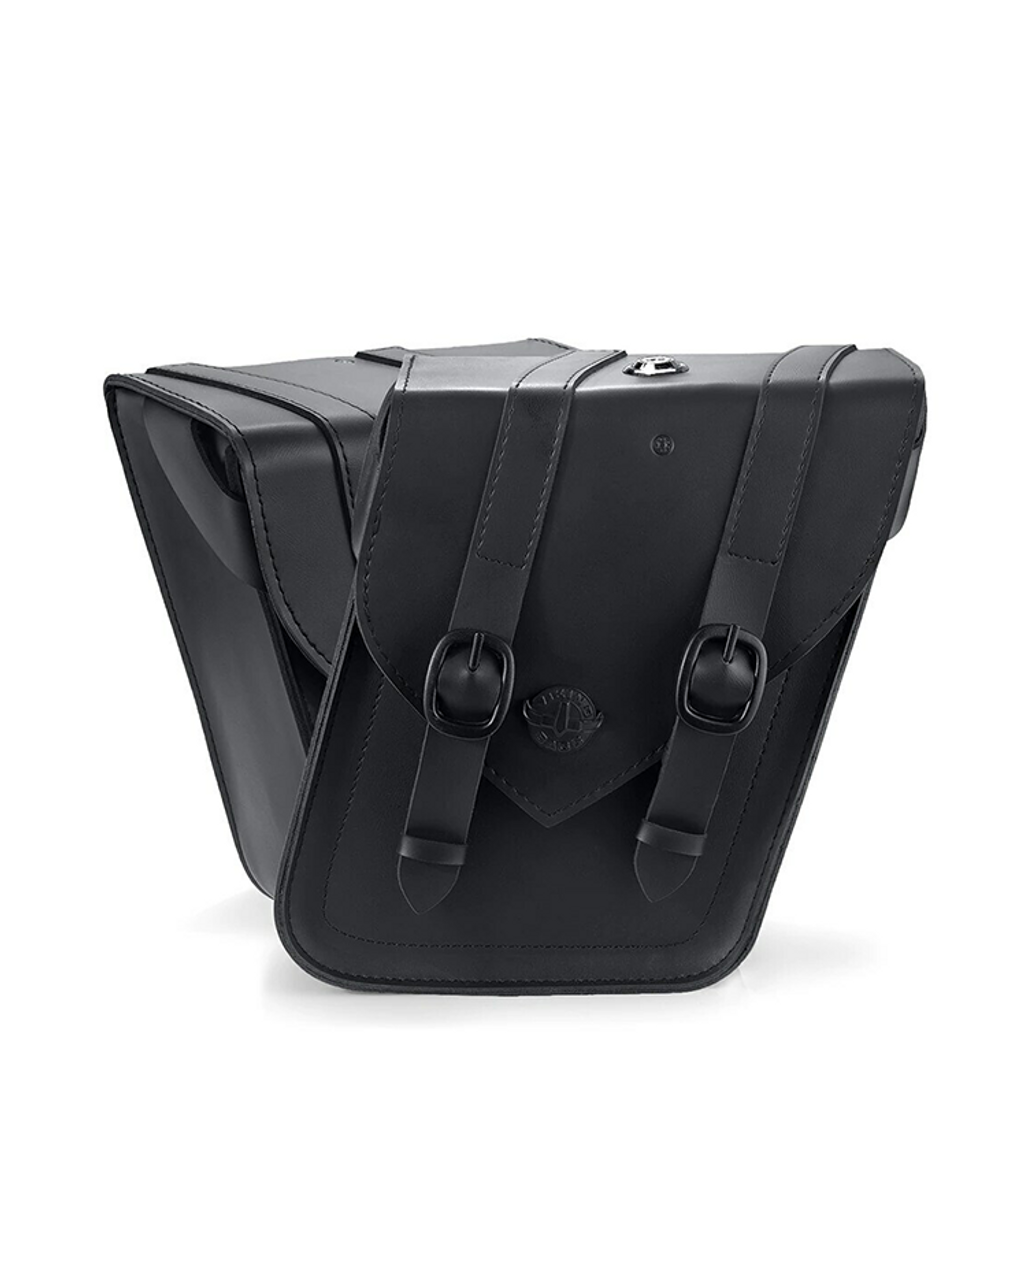 Viking Dark Age Compact Strapped Leather Motorcycle Saddlebags For Sportster 883 Iron XL883N Both bag view